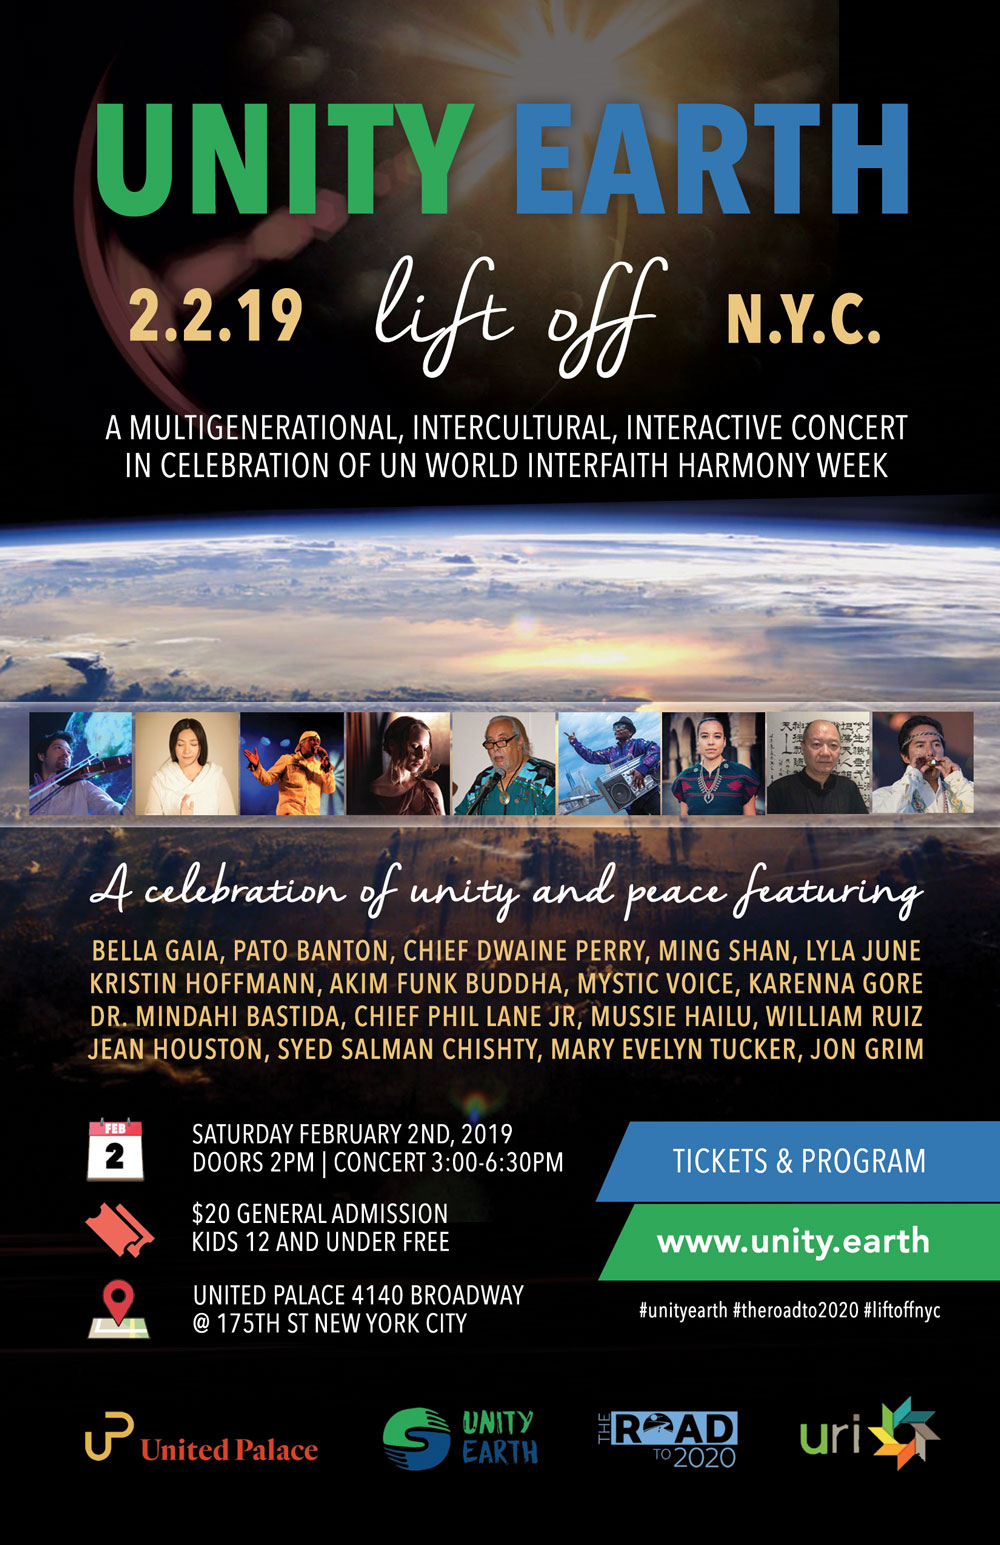 UNITY EARTH LIFT OFF: Concert + Broadcast